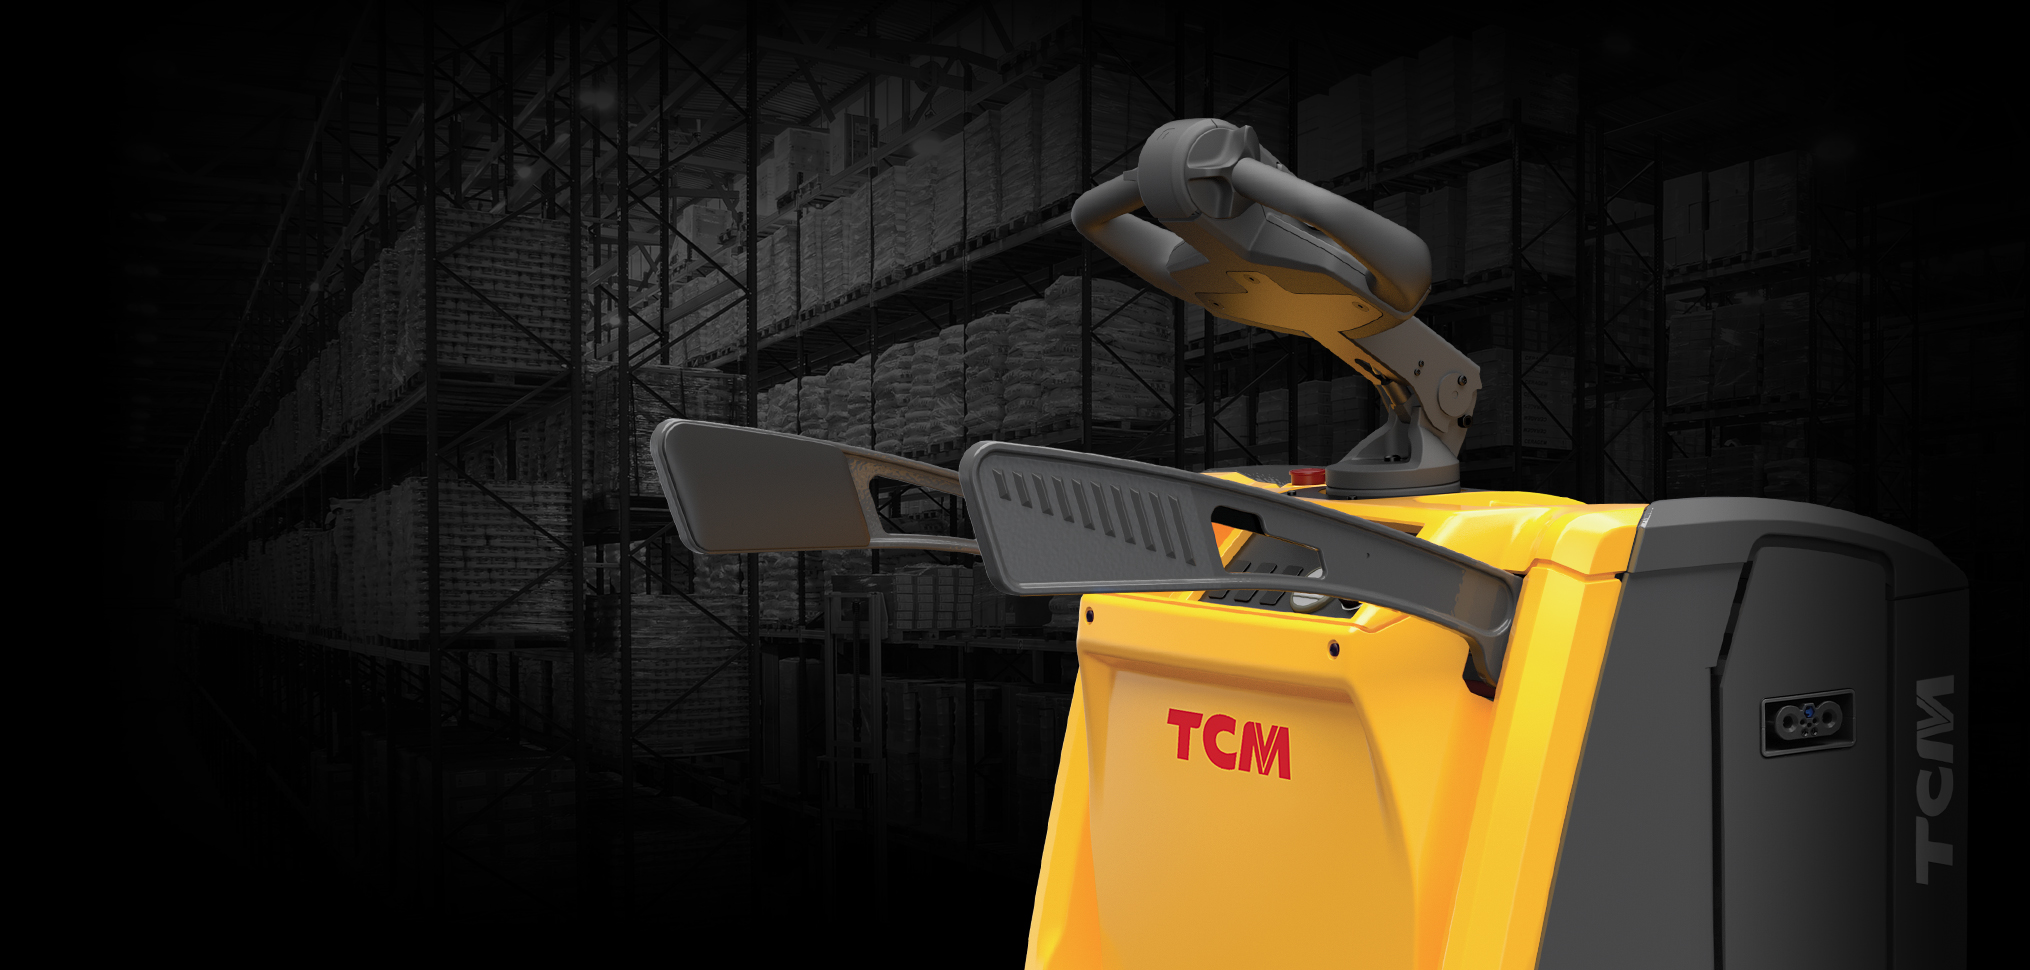 First Look: New TCM Powered Pallet Trucks